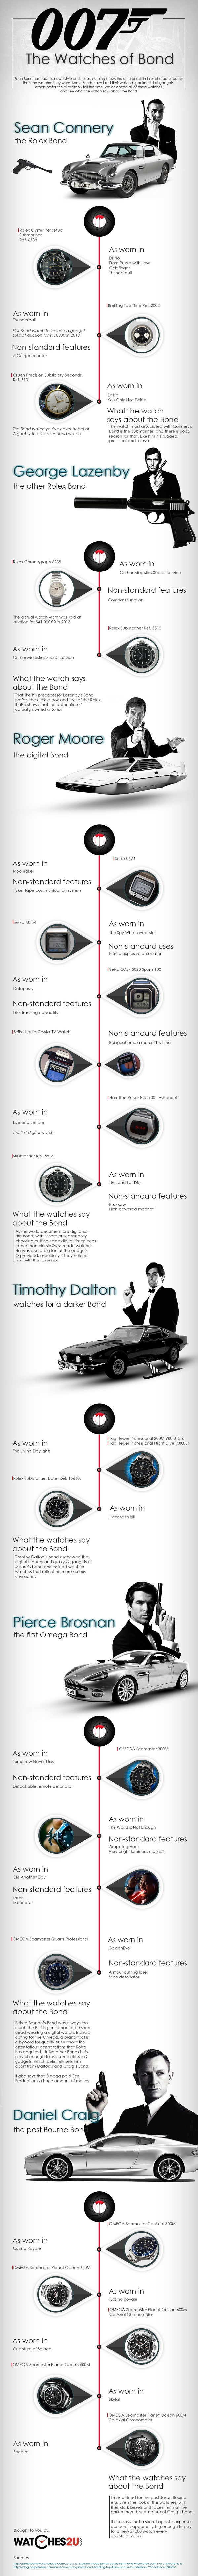 A History Of James Bond Watches WEB